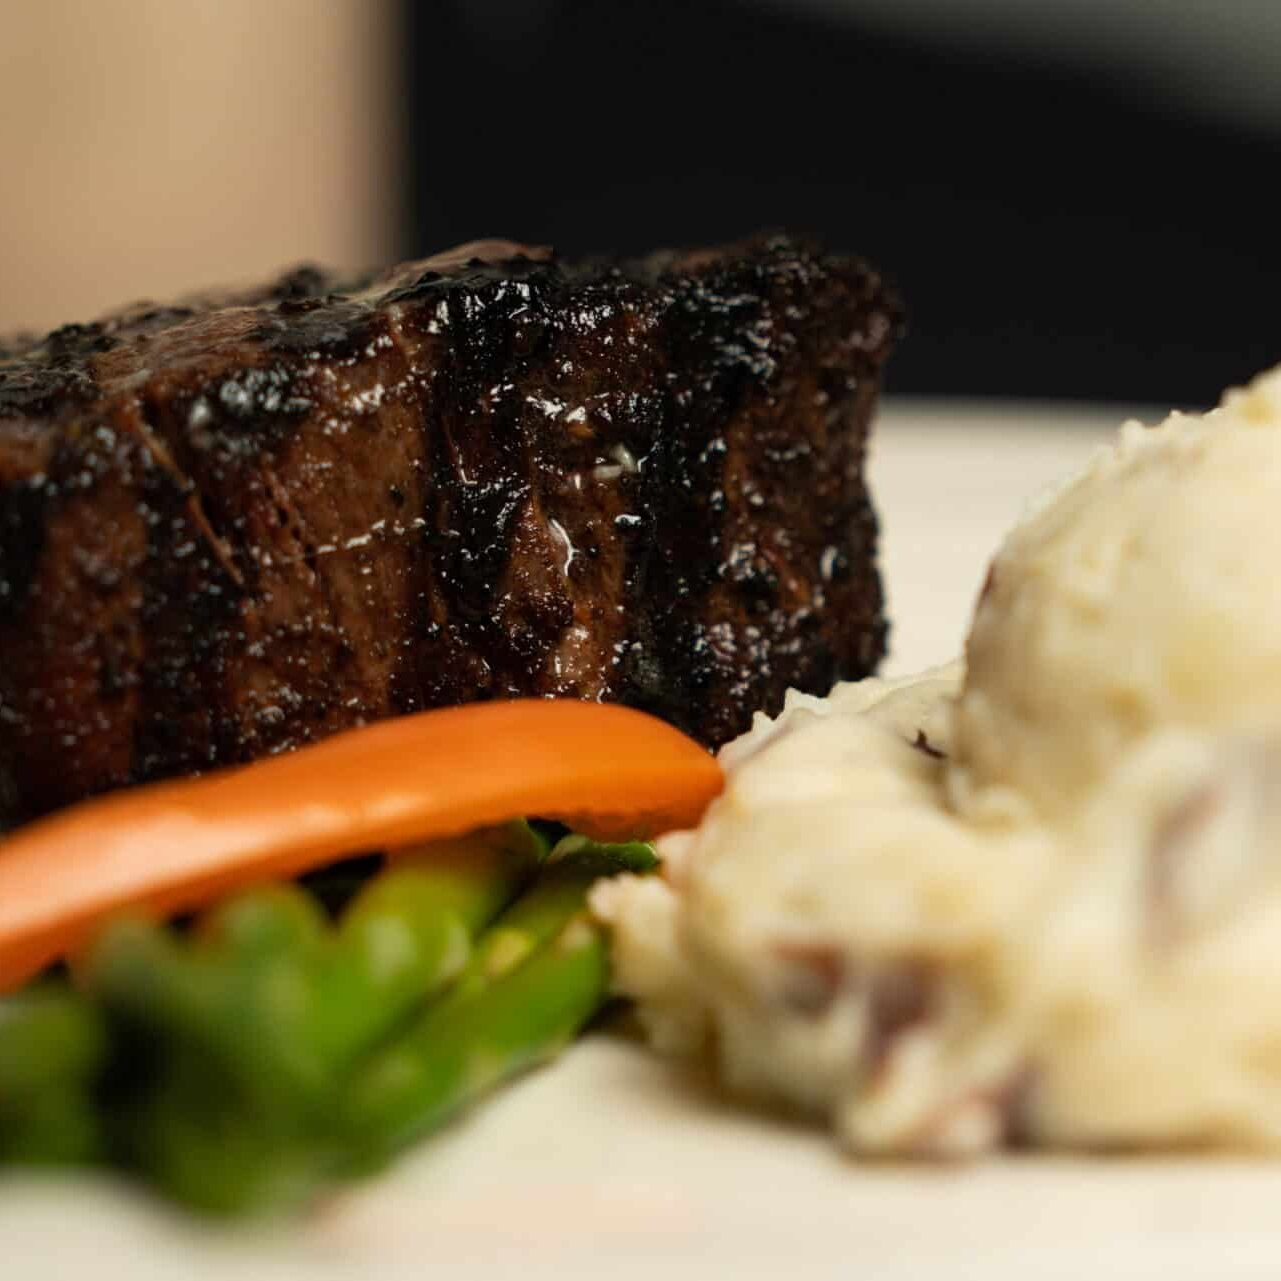 Juicy steak with grill marks, fresh vegetables, and fluffy mashed potatoes